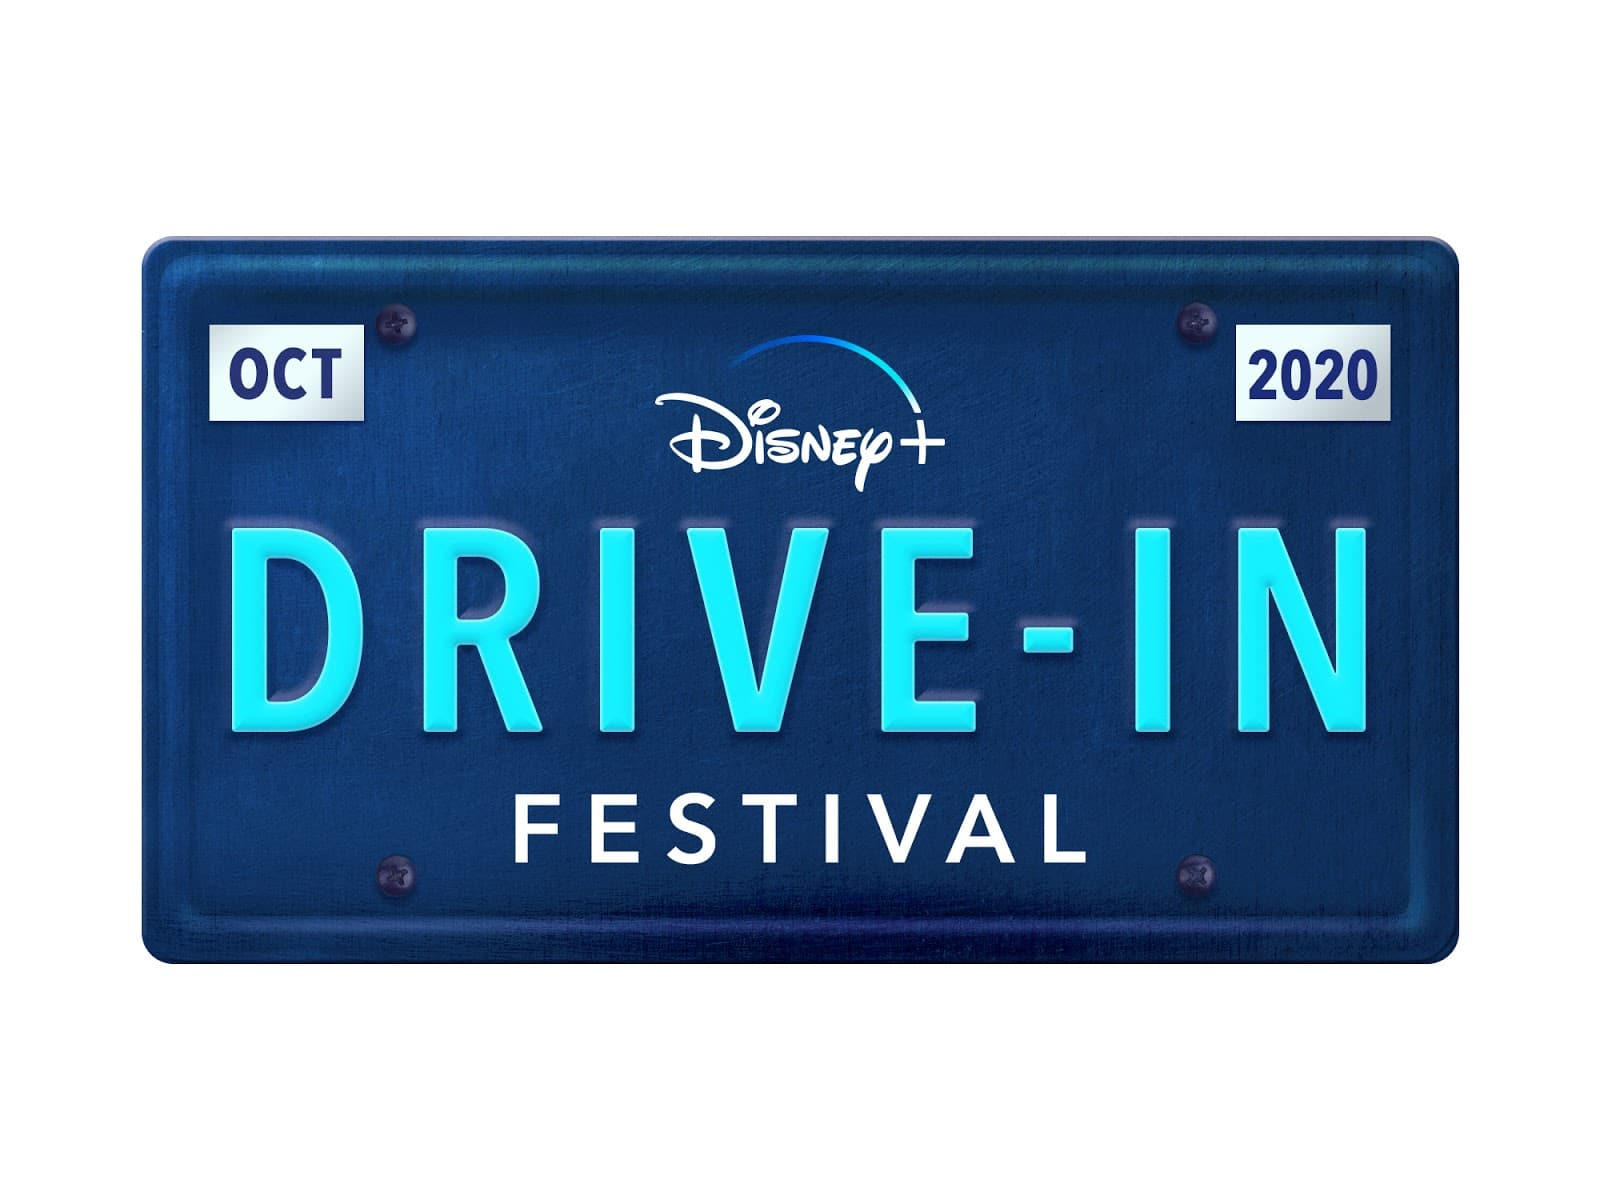 Disney+ Drive-In Festival Coming to Santa Monica, California in October